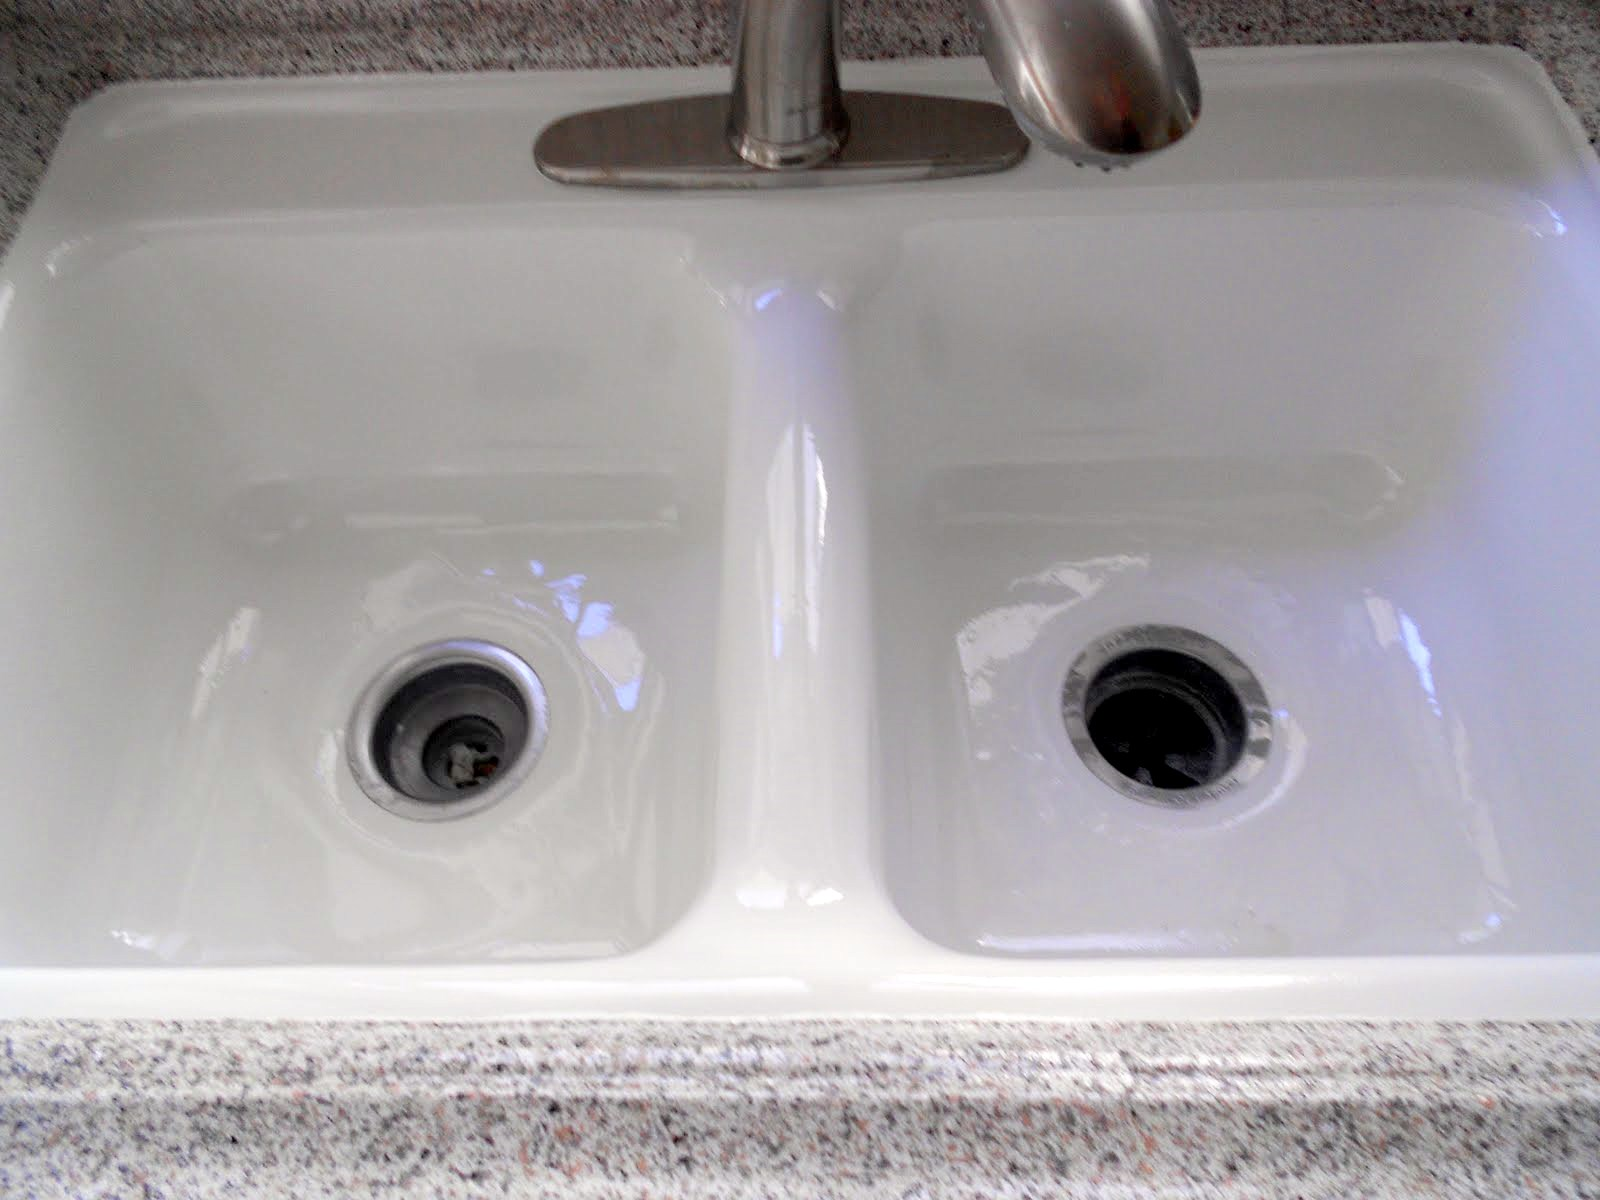 Beautiful ... Kitchen Sink   After Reglazing, Refinishing